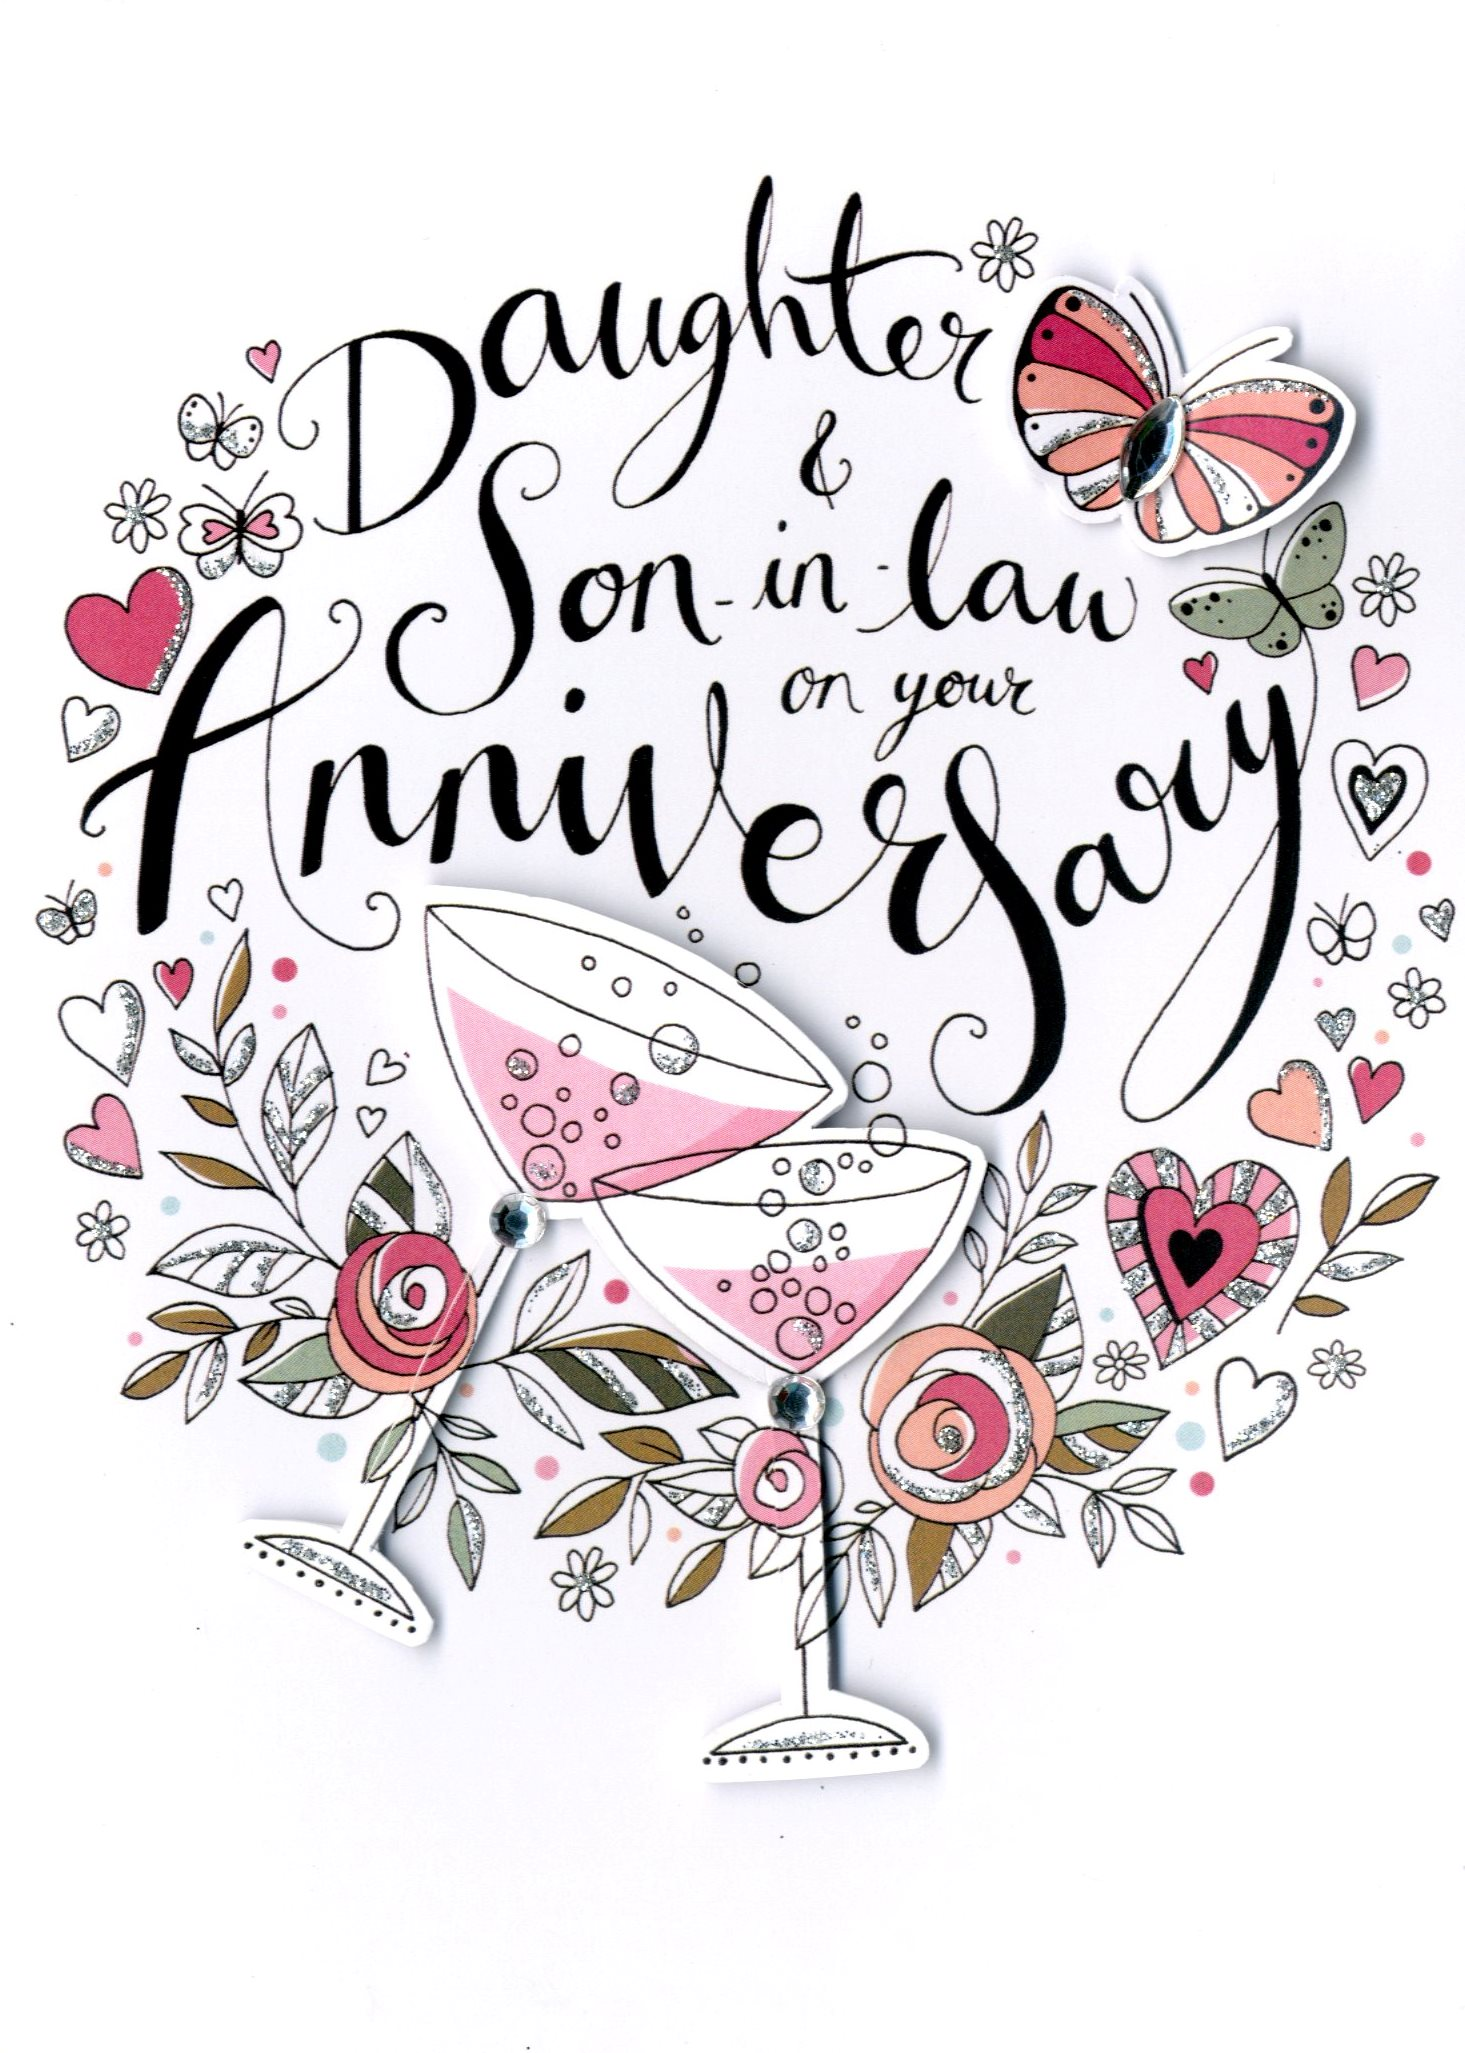 Daughter Son In Law Anniversary Card